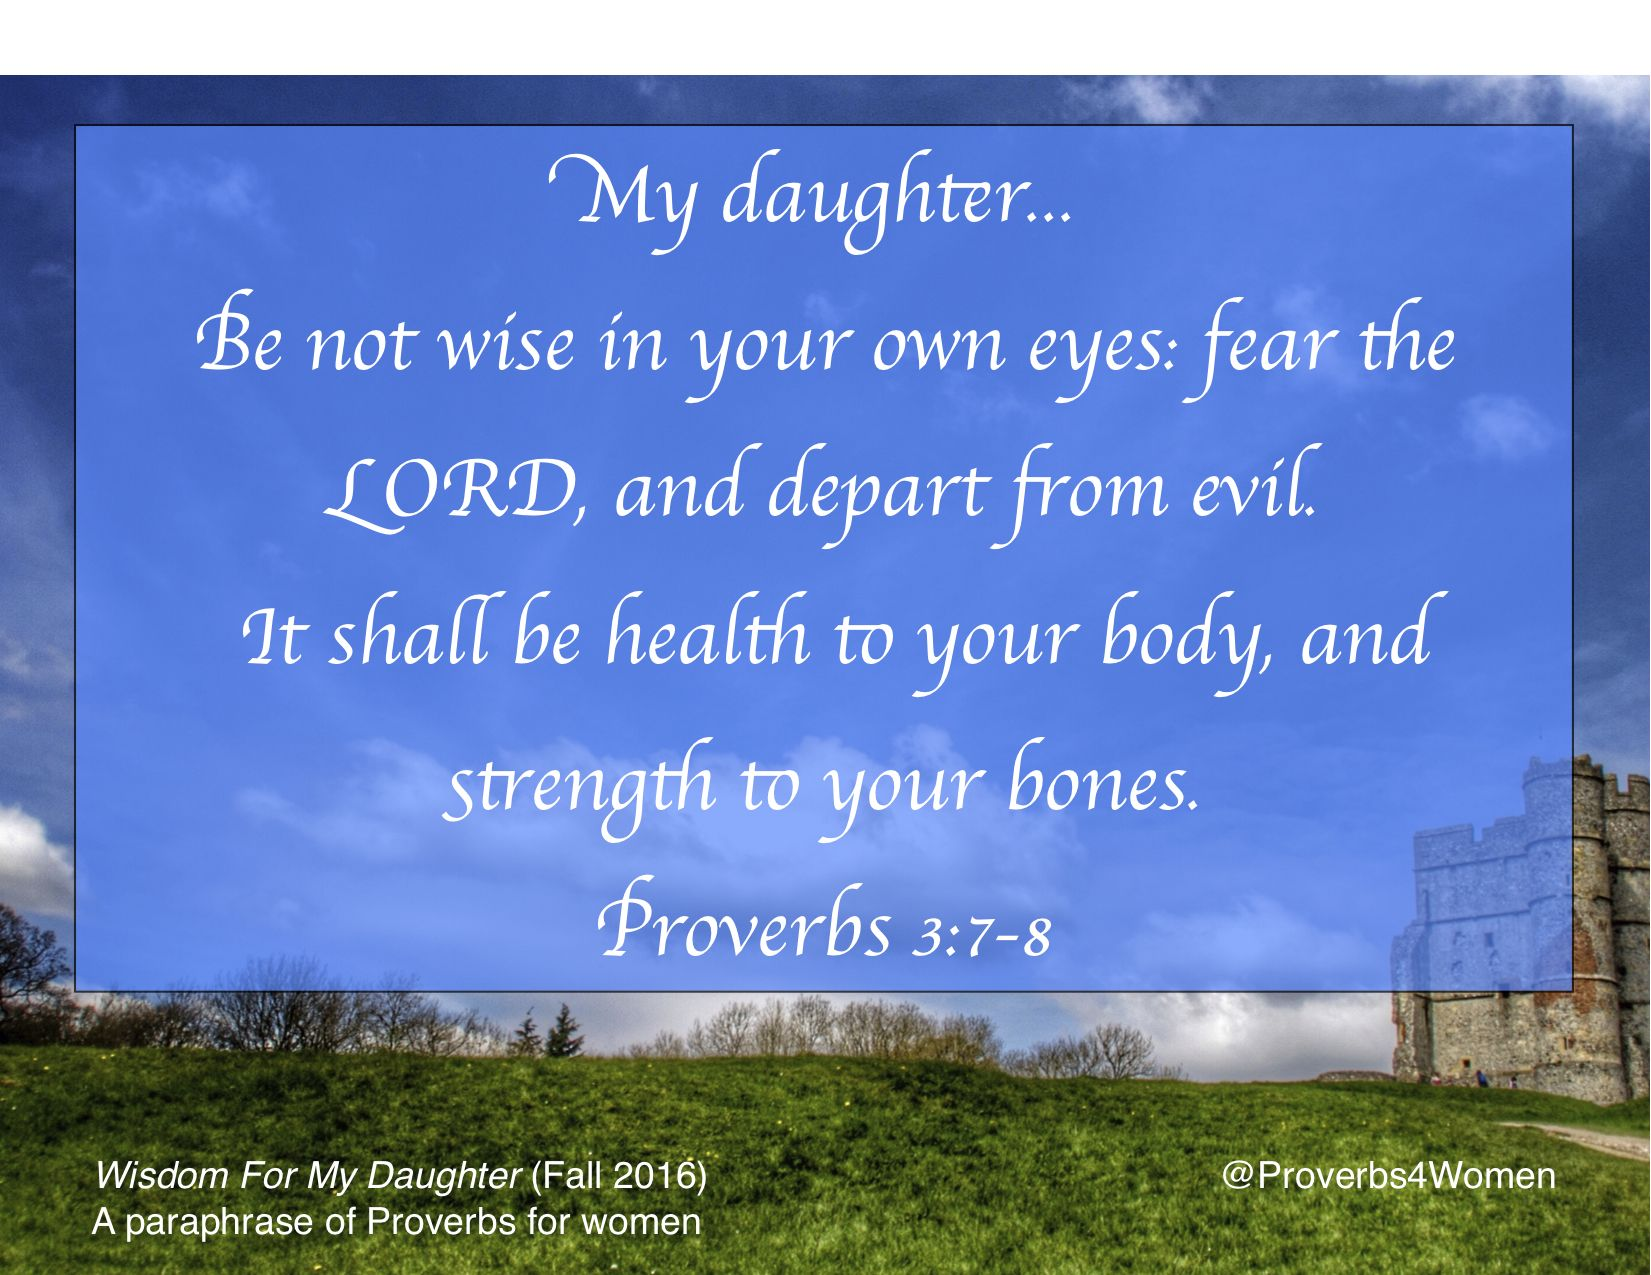 Wisdomforwomen Proverb 3 7 8 Book Of Fear The Lord Wisdom Paraphrase For My Daughter